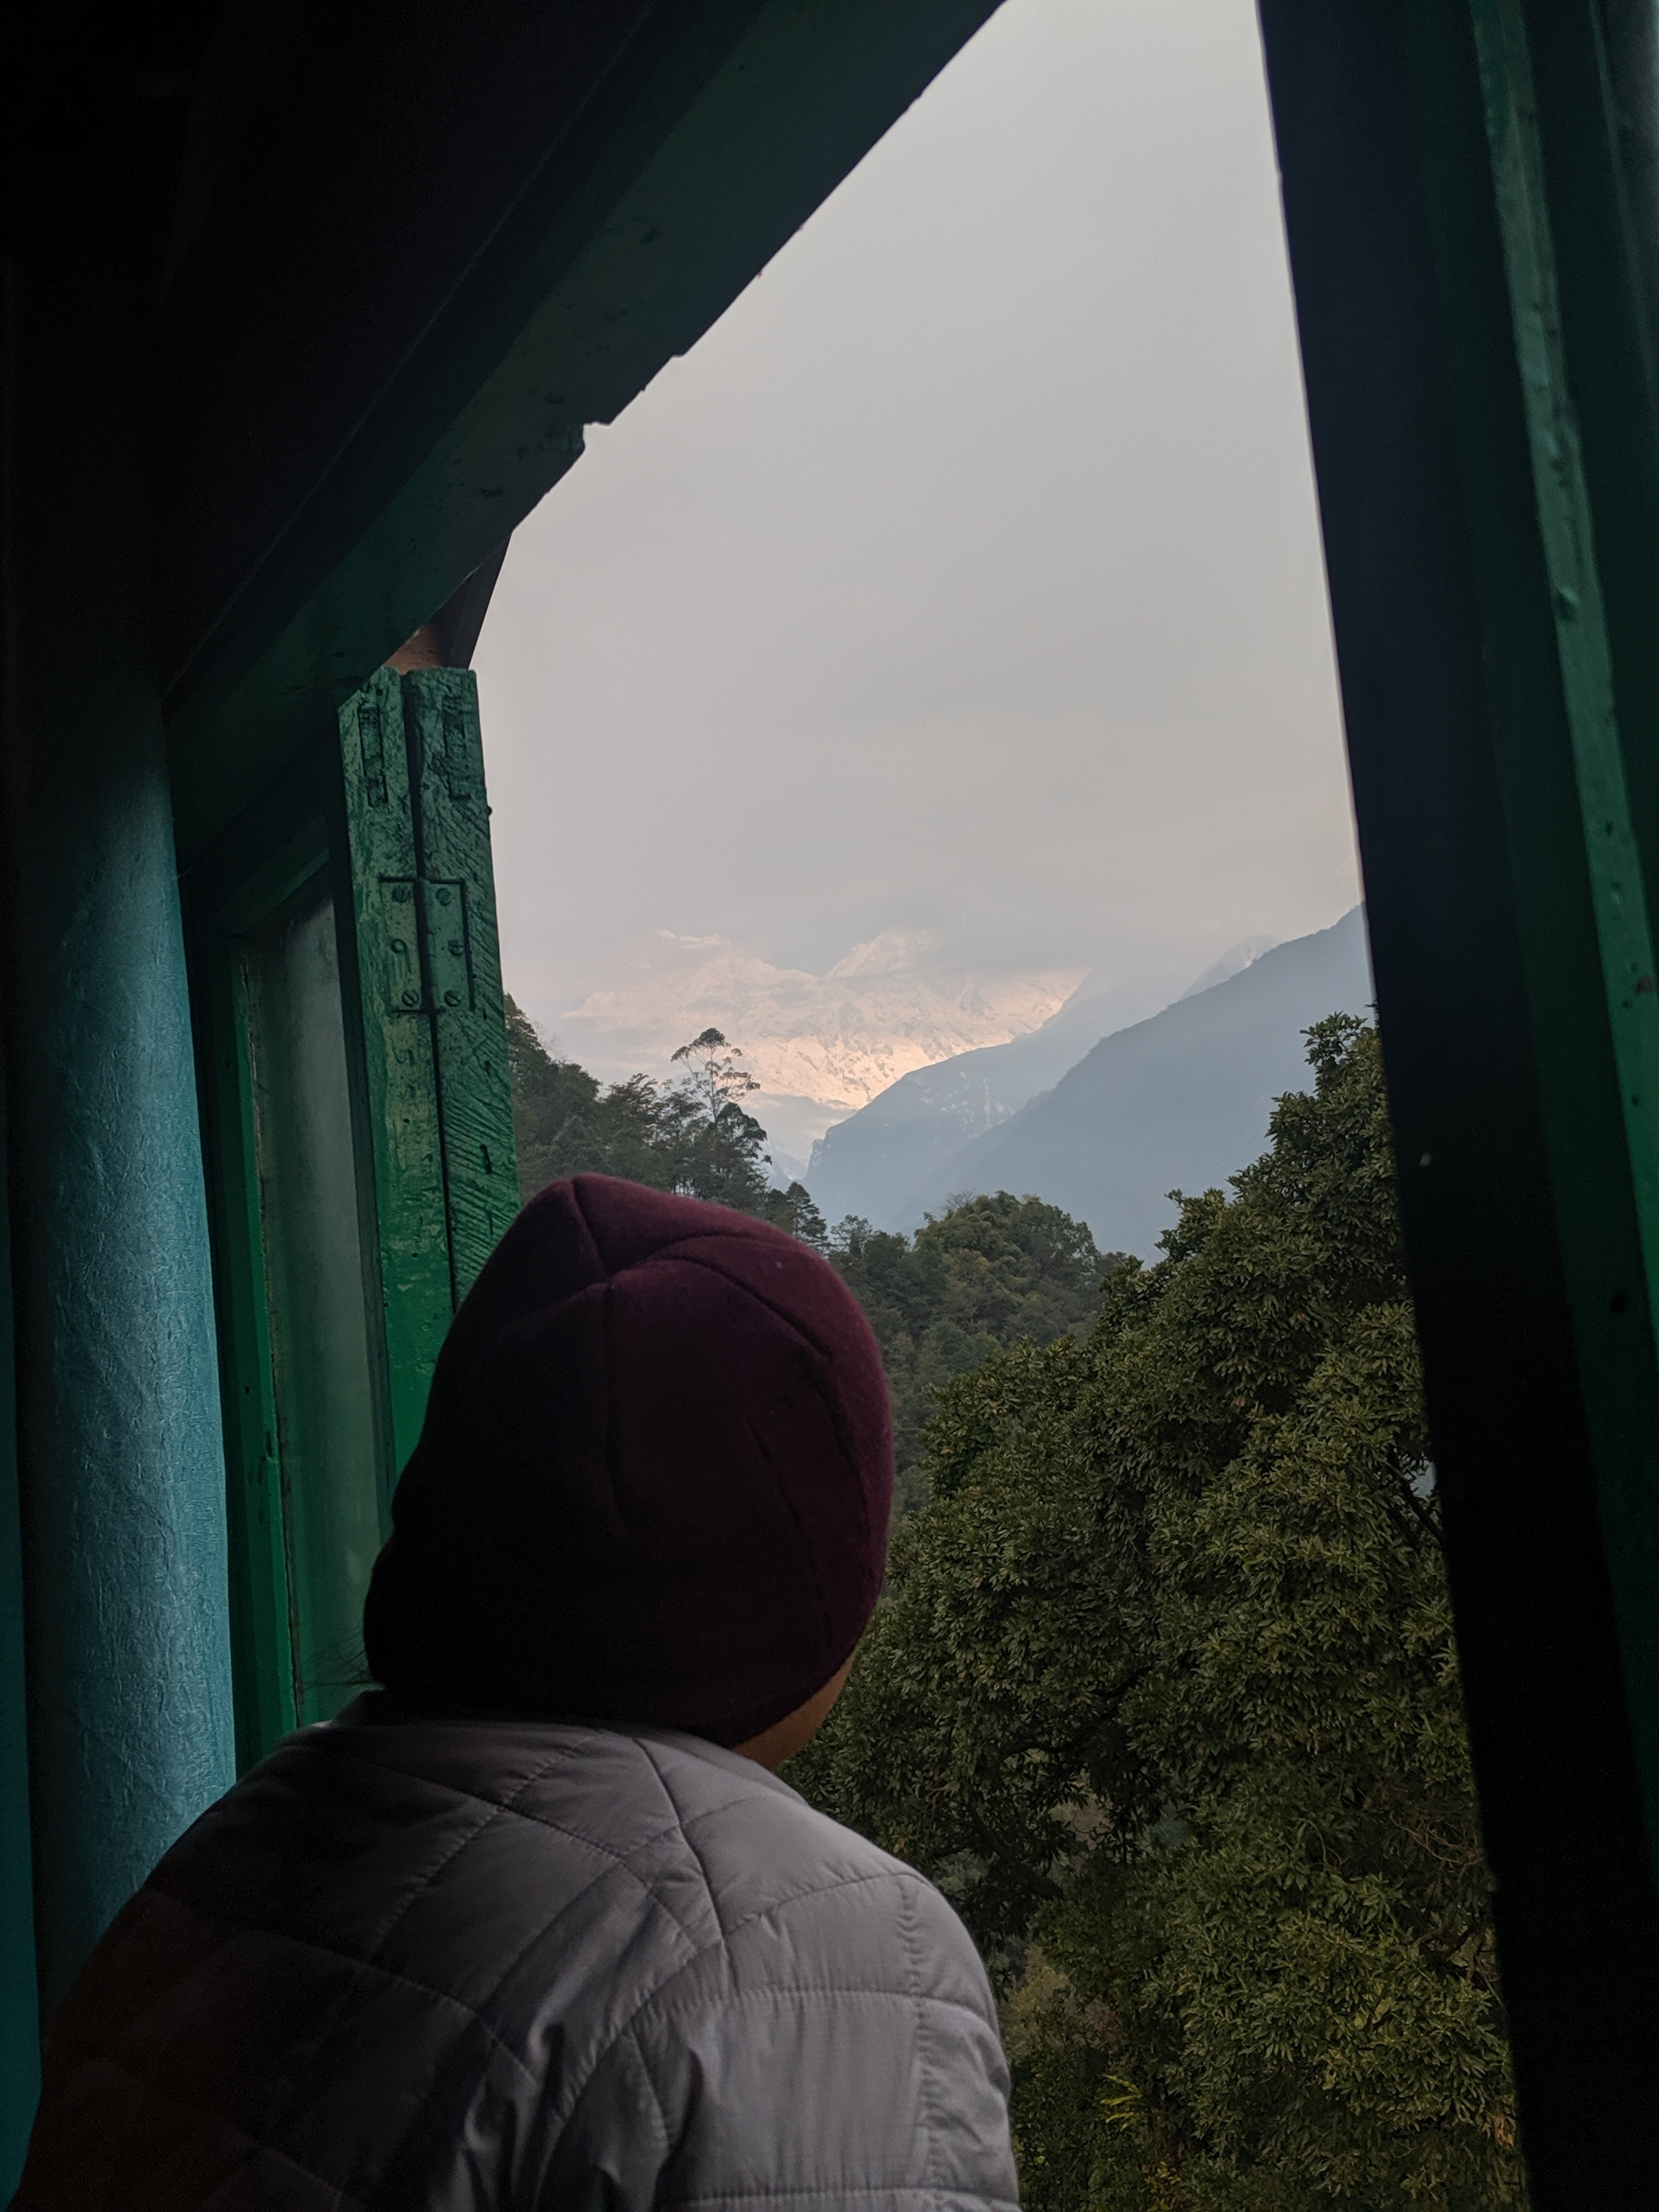 Kanchenjunga as seen from our room